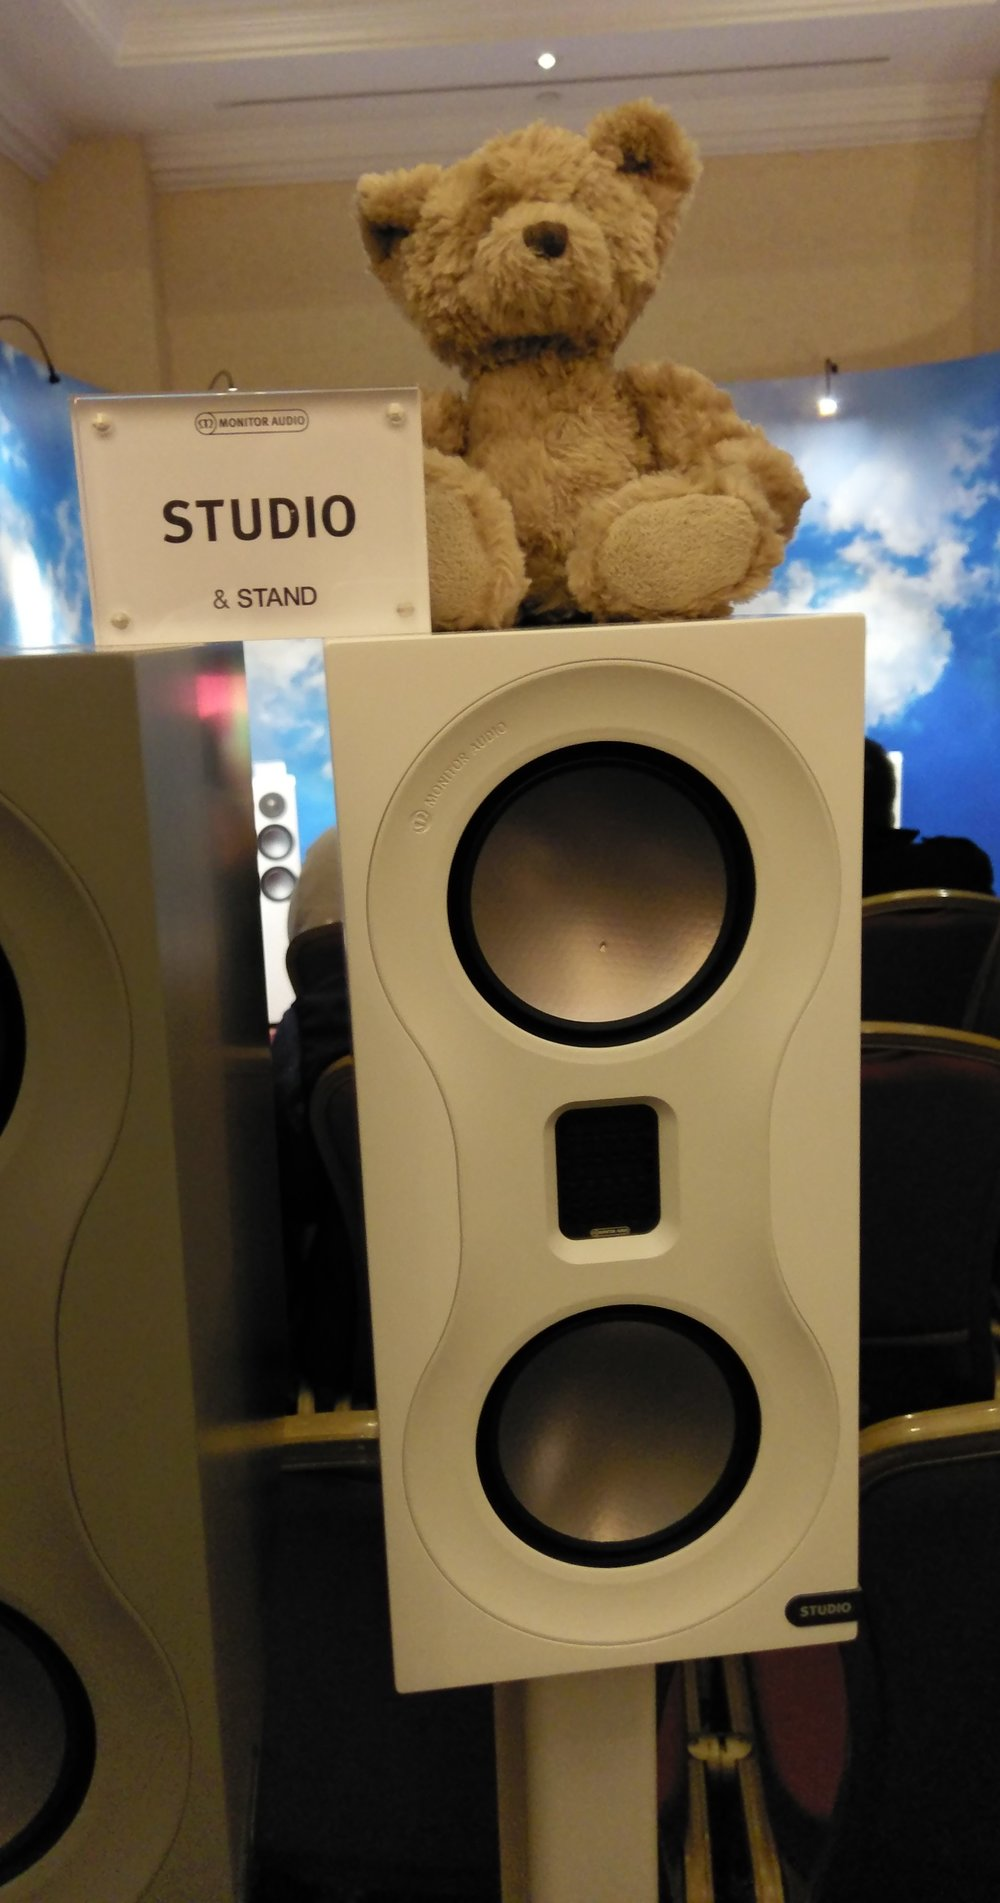 Boswell did have a chance to perch on the new Monitor Audio Studio speakers which were rather wonderful.